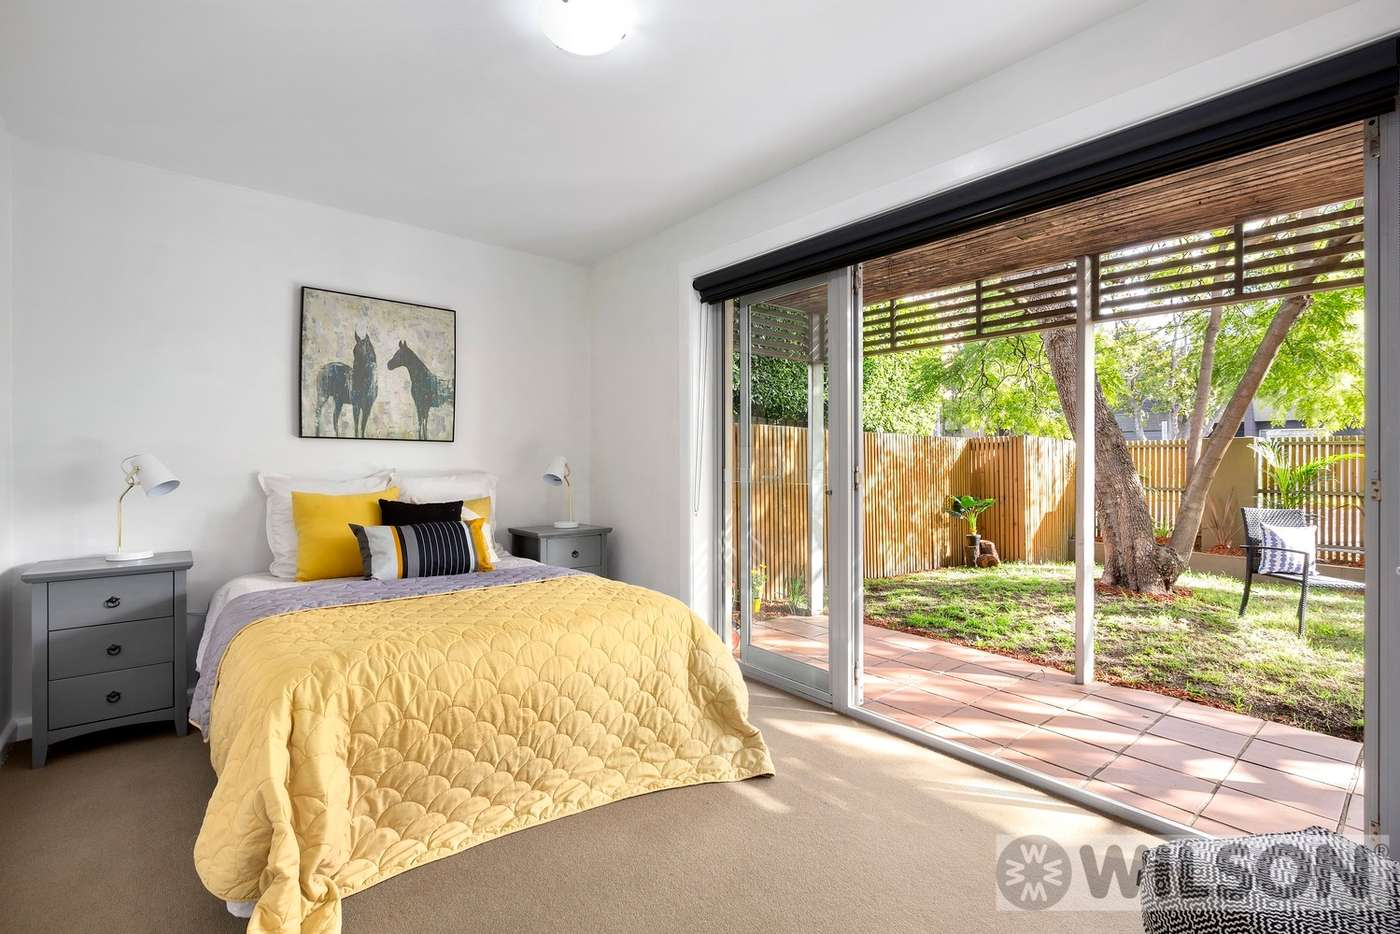 Sixth view of Homely apartment listing, 1/21 Thanet Street, Malvern VIC 3144